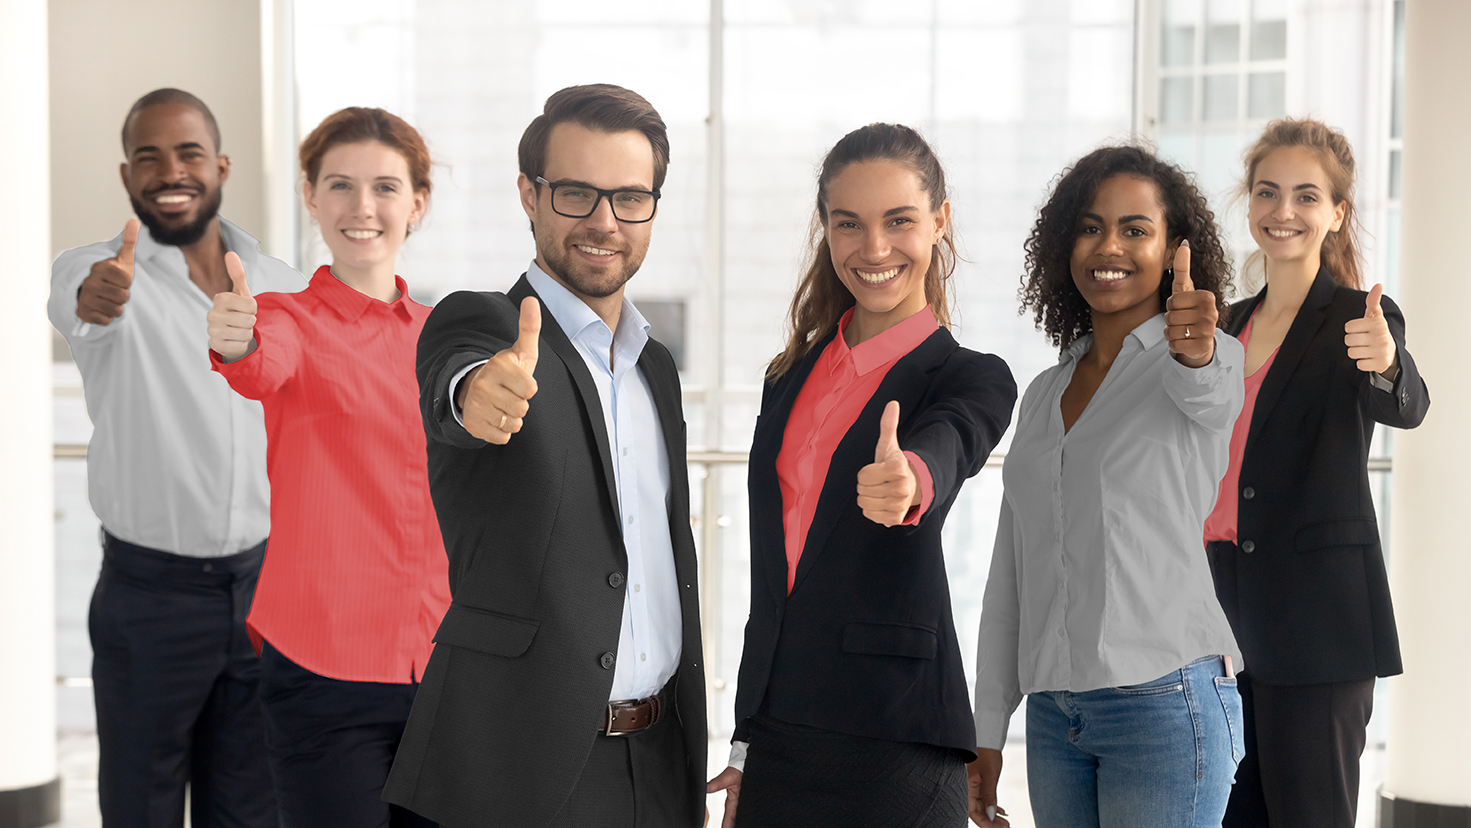 Business leaders with employees group showing thumbs up